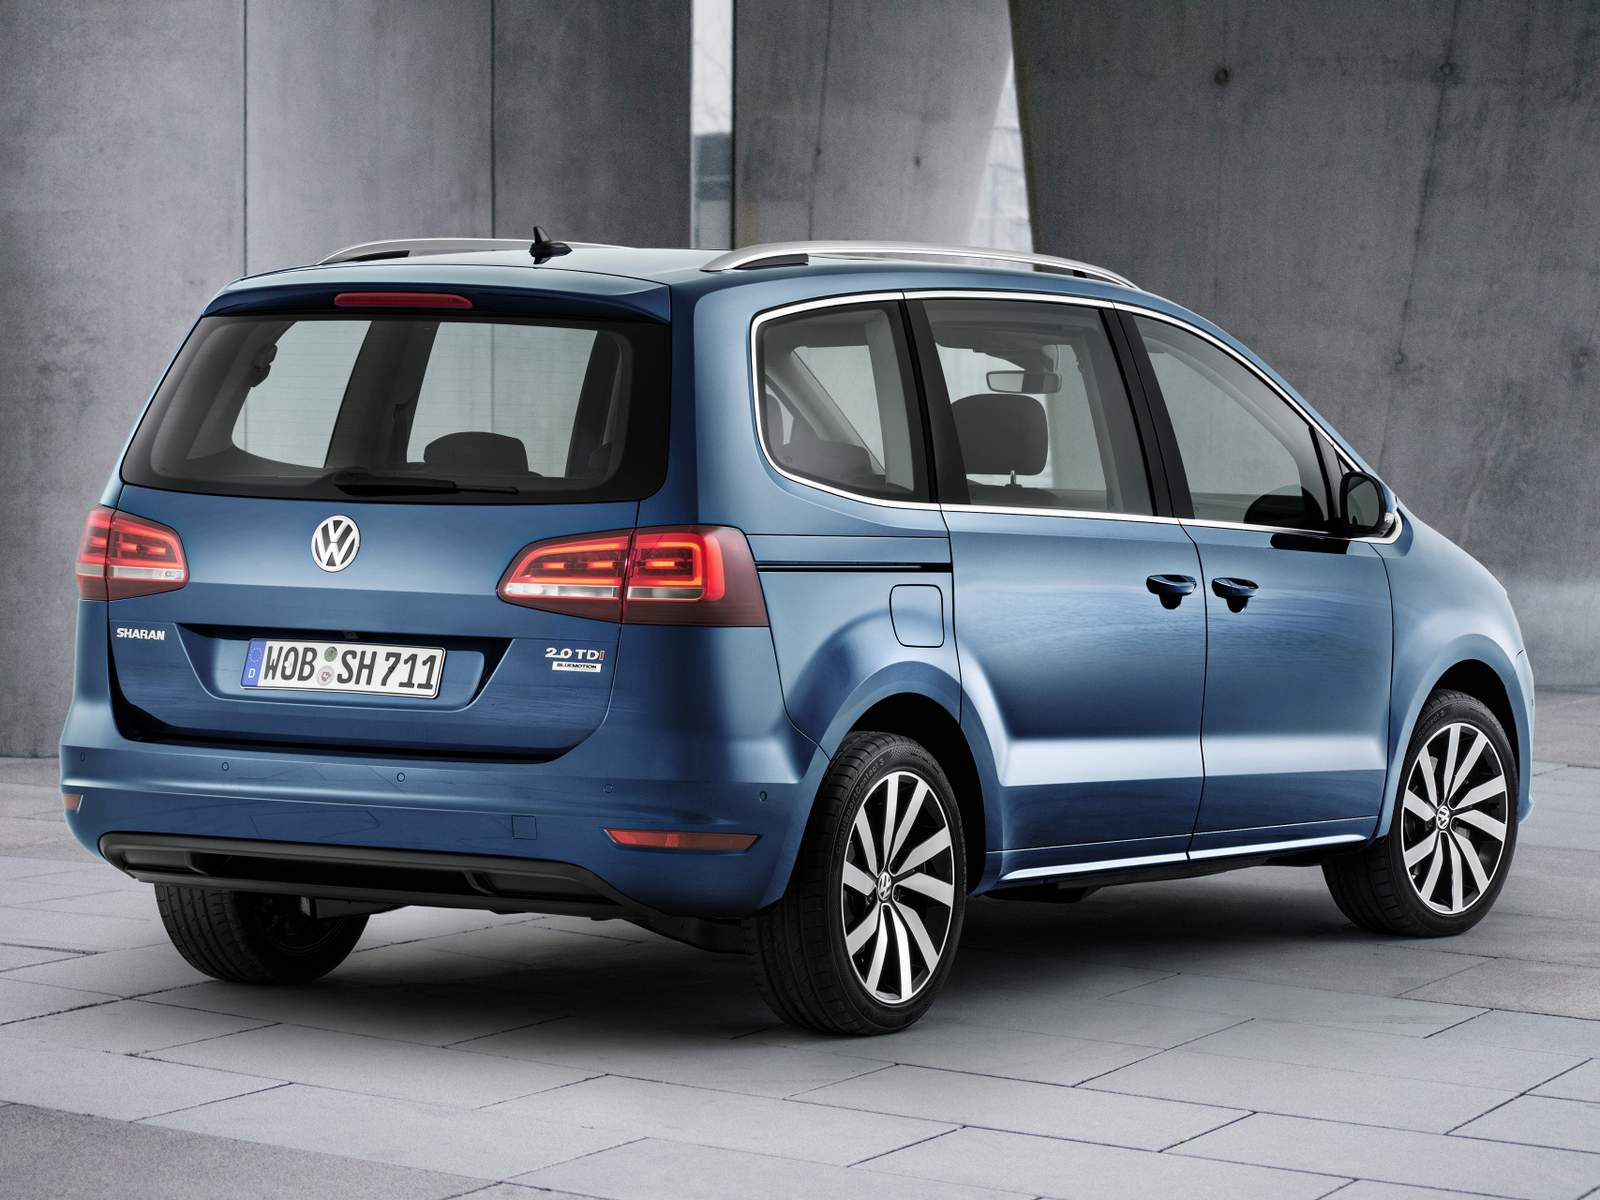 volkswagen touran 2016 fotos e especifica es oficiais car blog br. Black Bedroom Furniture Sets. Home Design Ideas